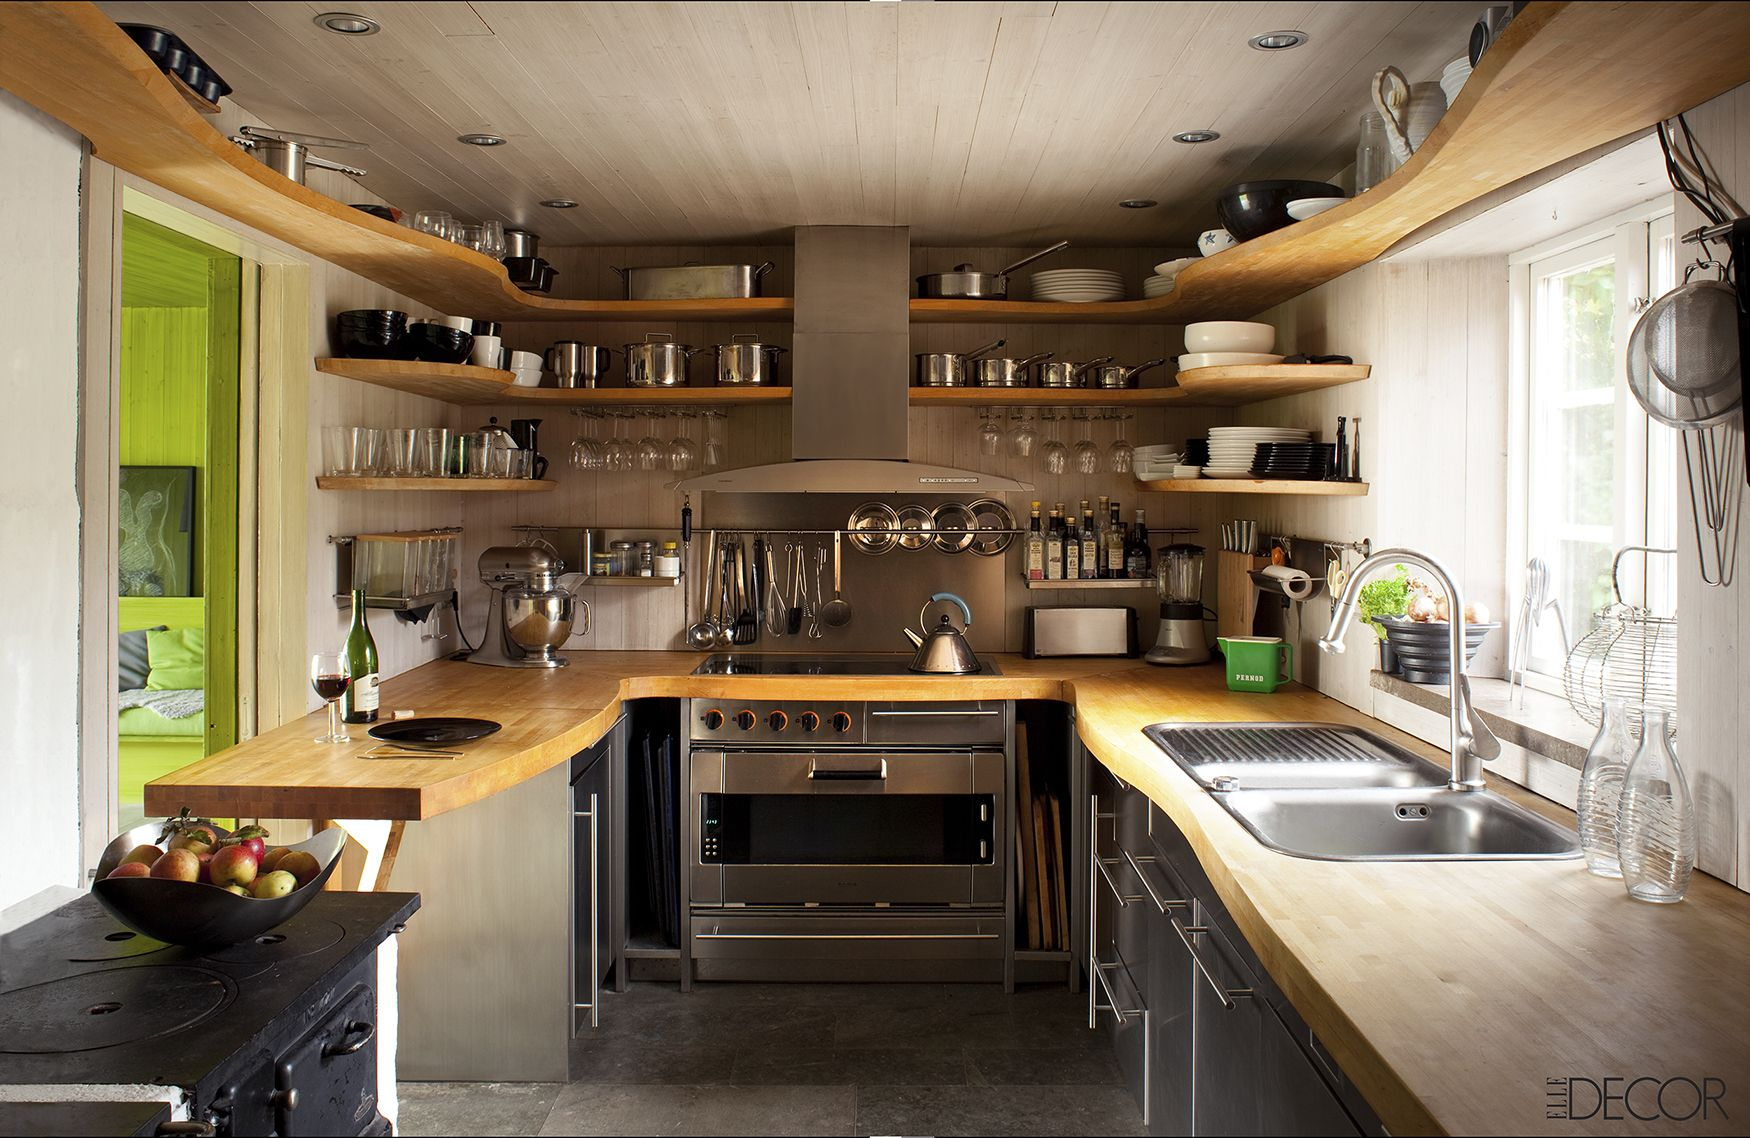 40 Small Kitchen Design IdeasDecorating Tiny Kitchens